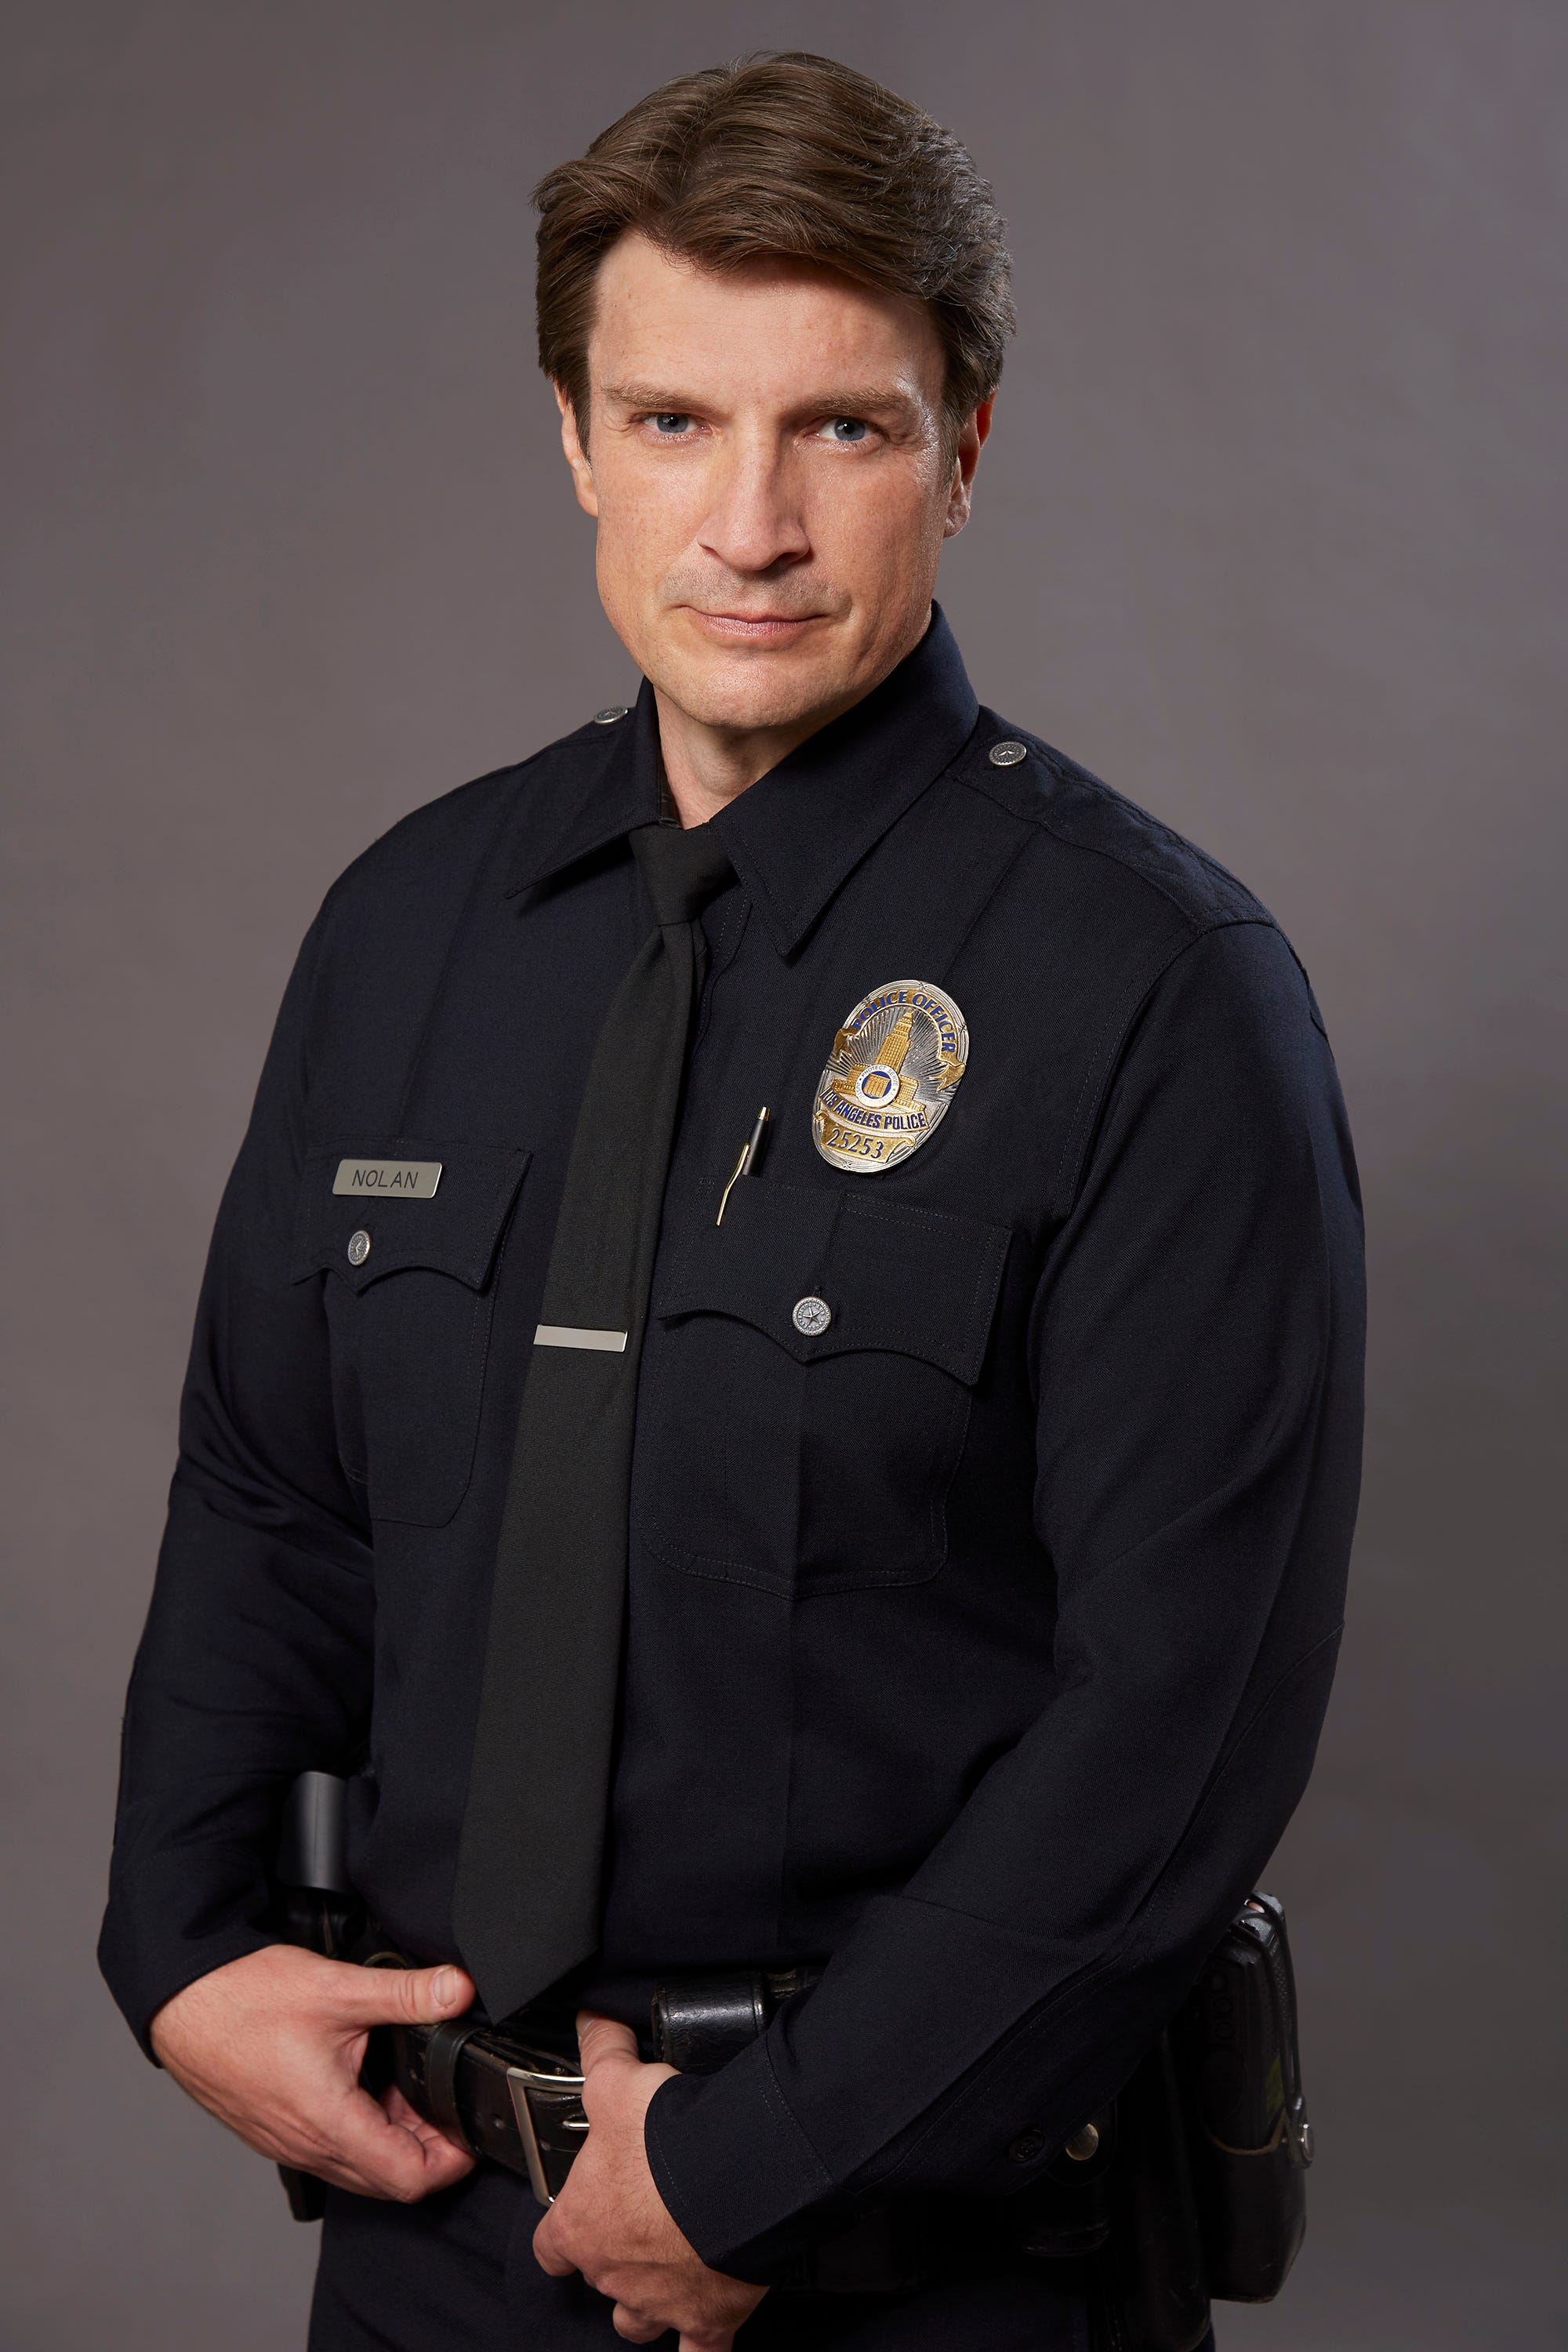 Images About Patrick Fillion Co On Pinterest Tom